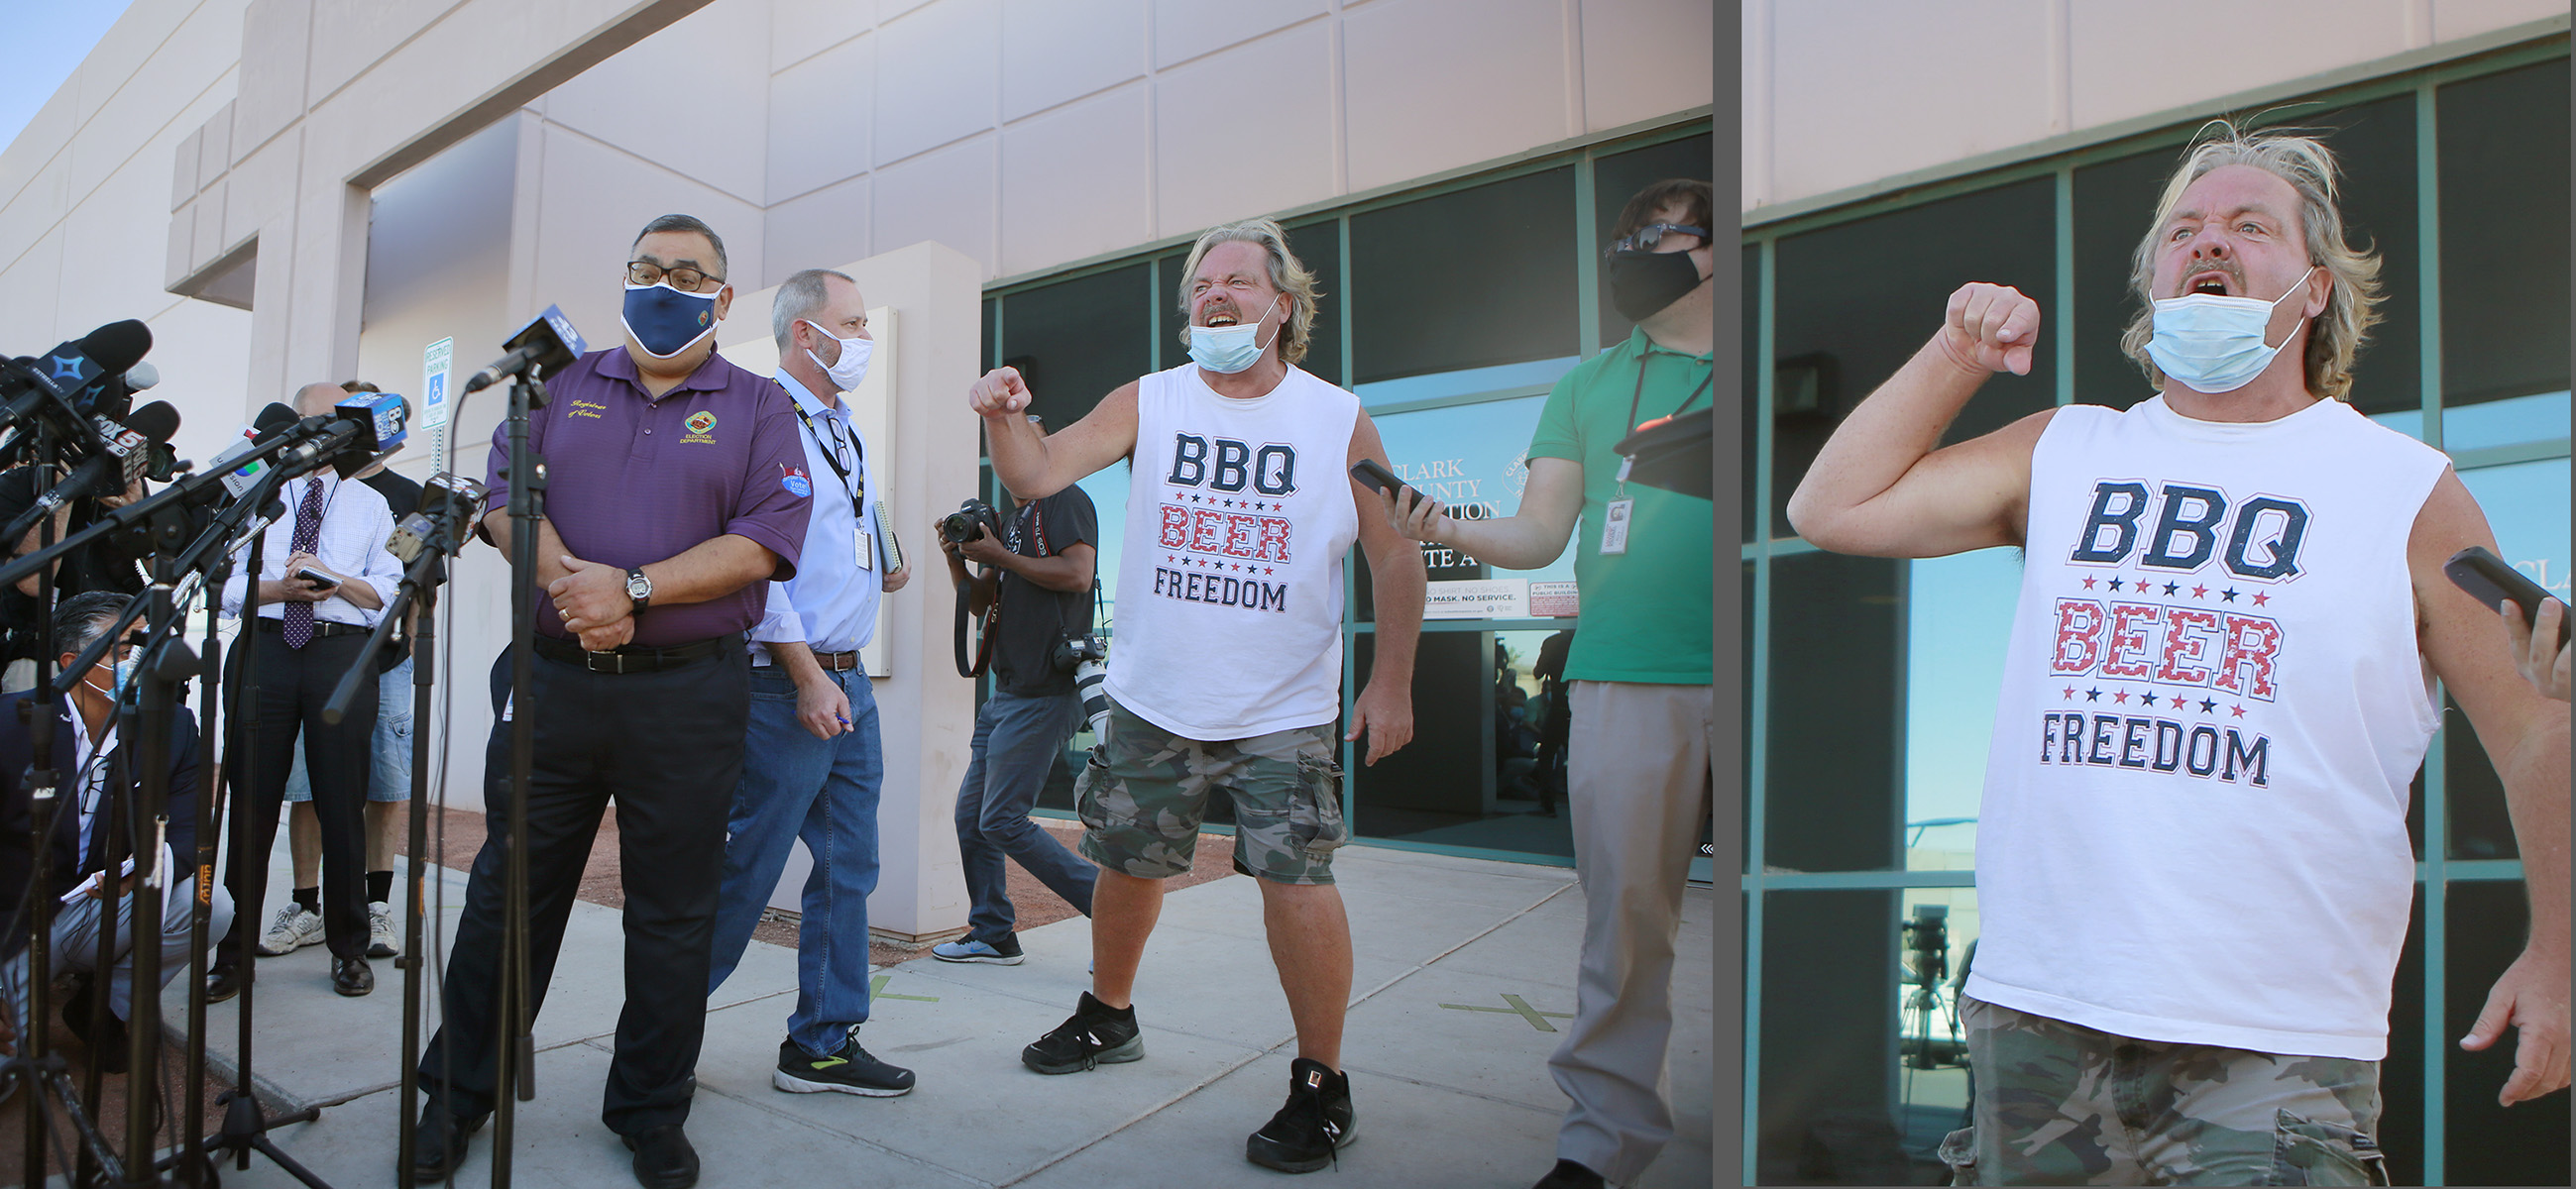 Clark County Registar of Voters Joe Gloria, left, is interrupted by a disgruntled member of the public during a press conference outside Clark County Election Department Wednesday, November 4, 2020, in North Las Vegas.